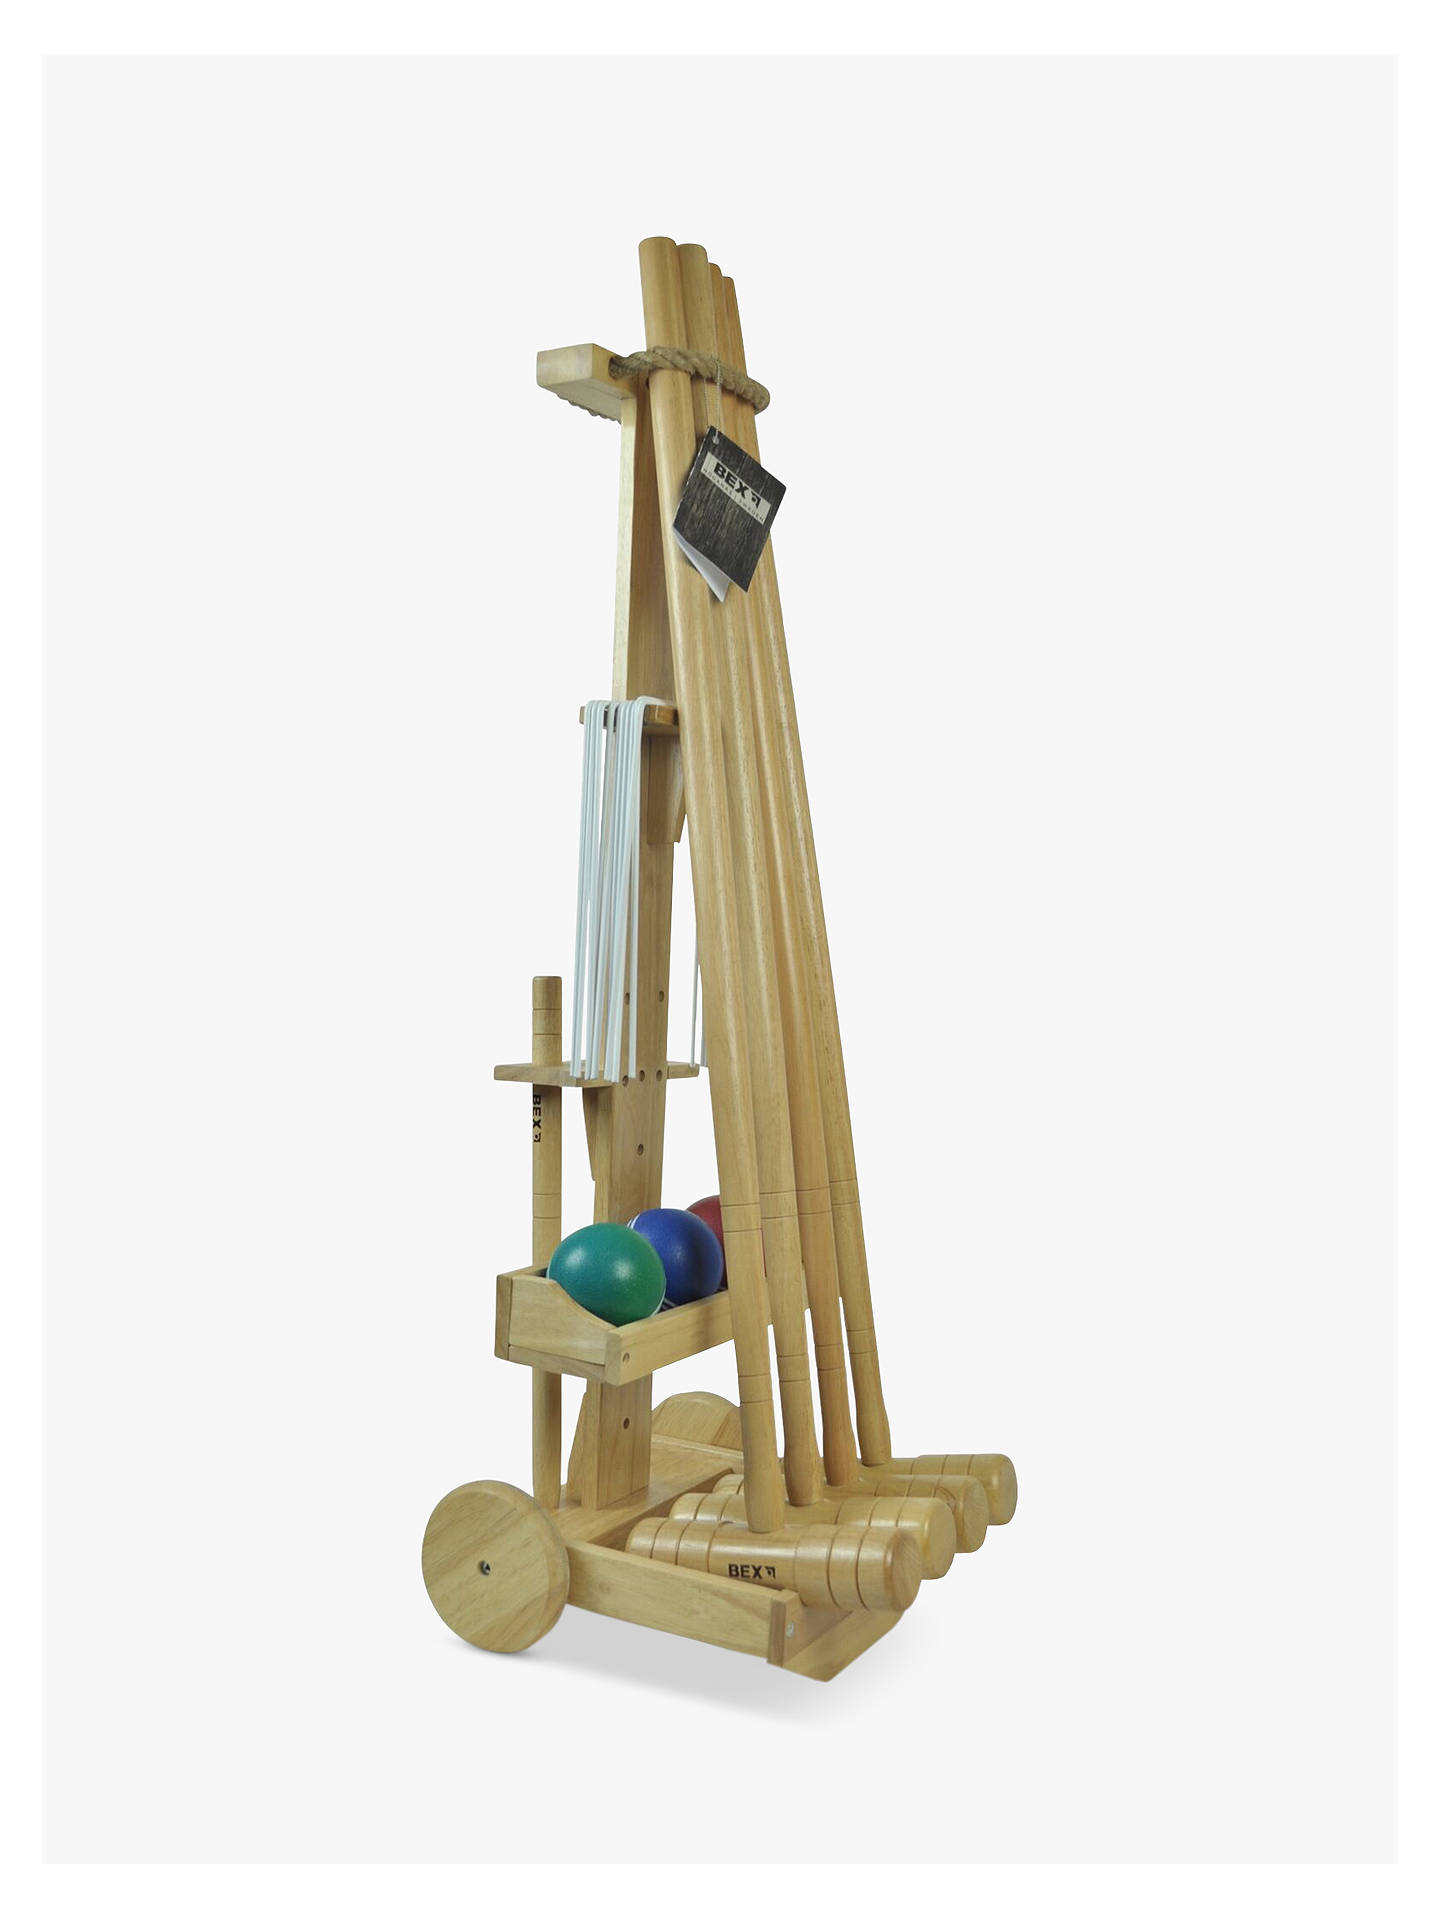 BuyBex Pro 4 Mallet Croquet Set Online at johnlewis.com